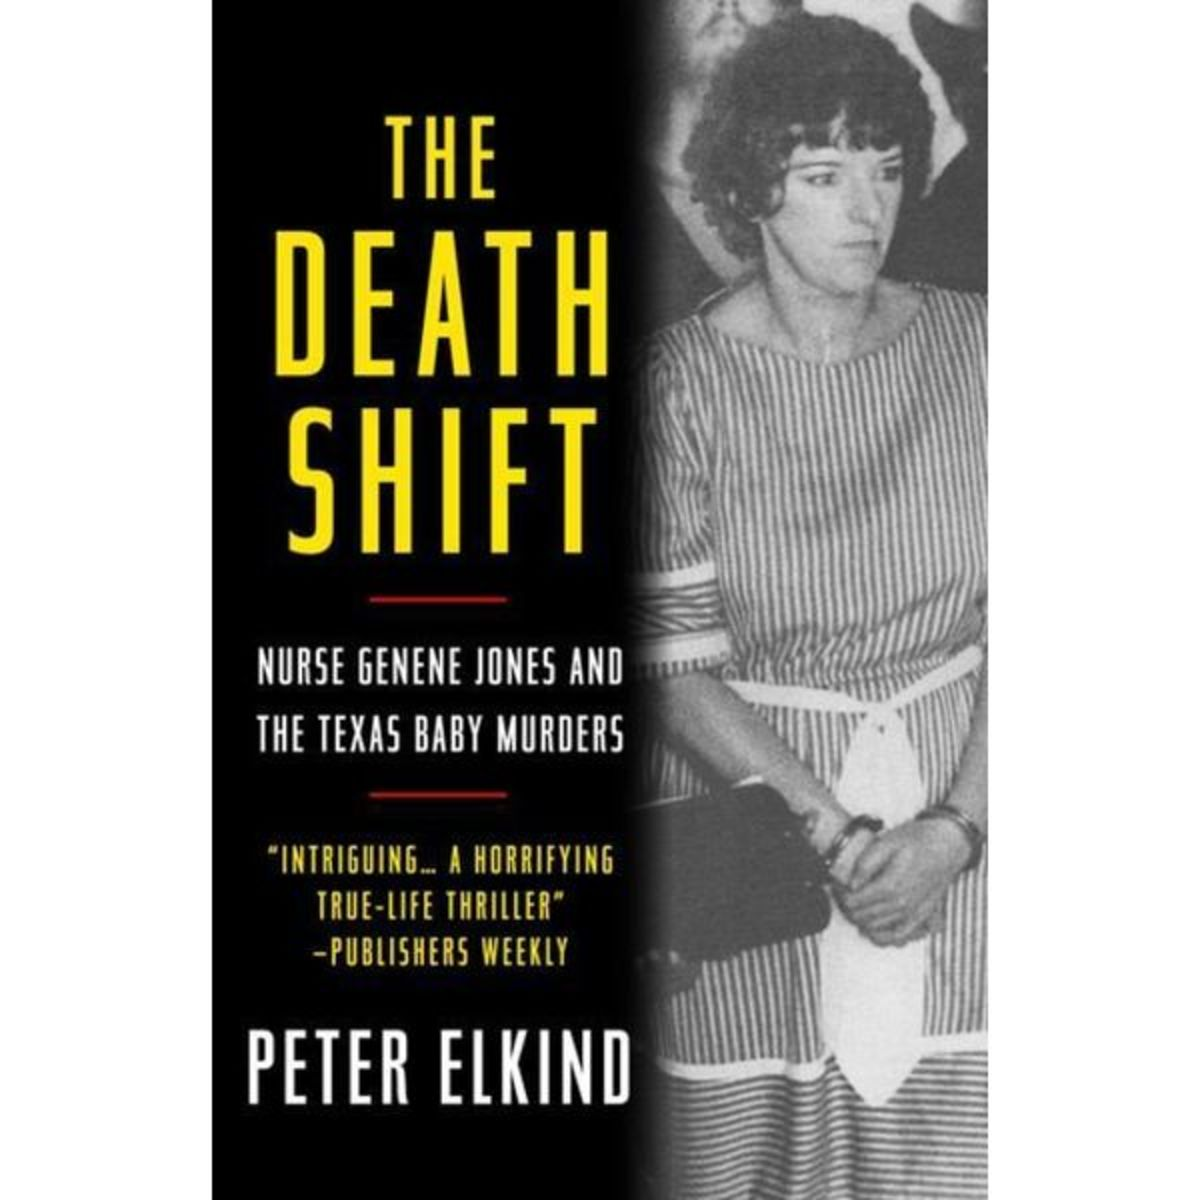 The Death Shift by Peter Elkind